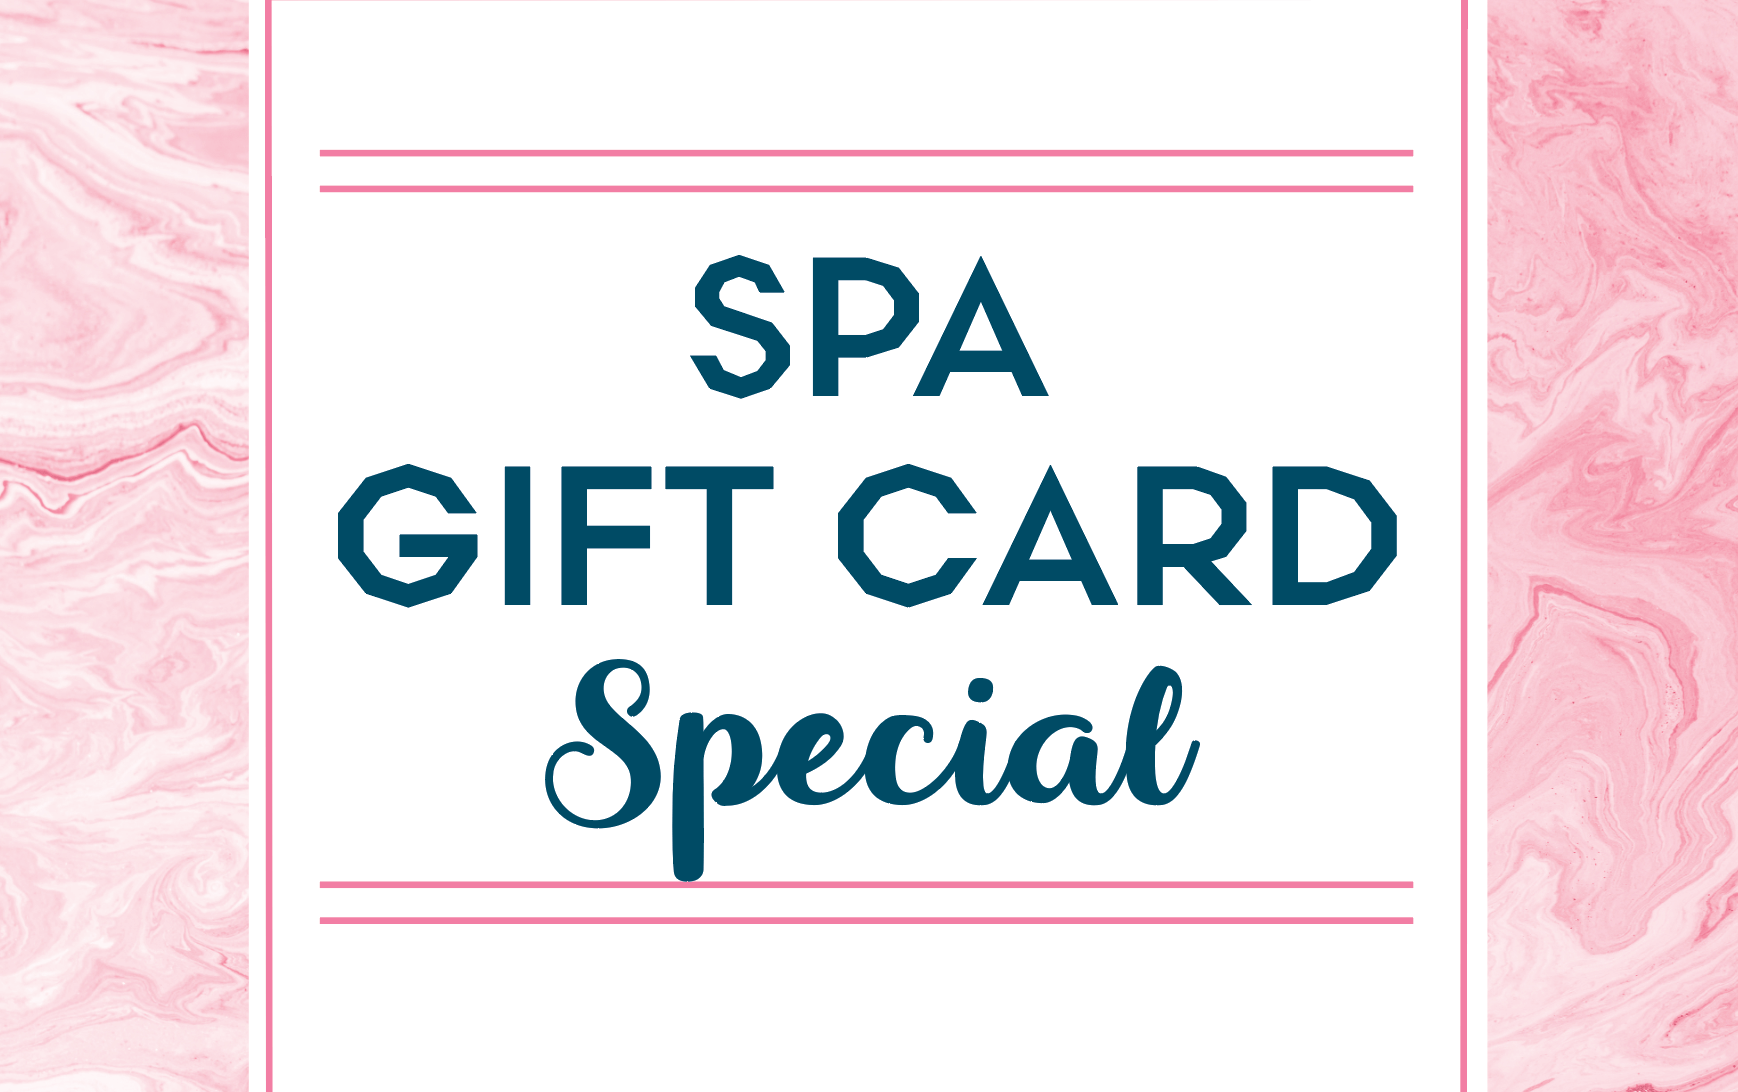 Spa Gift Card Special for Valentine's Day